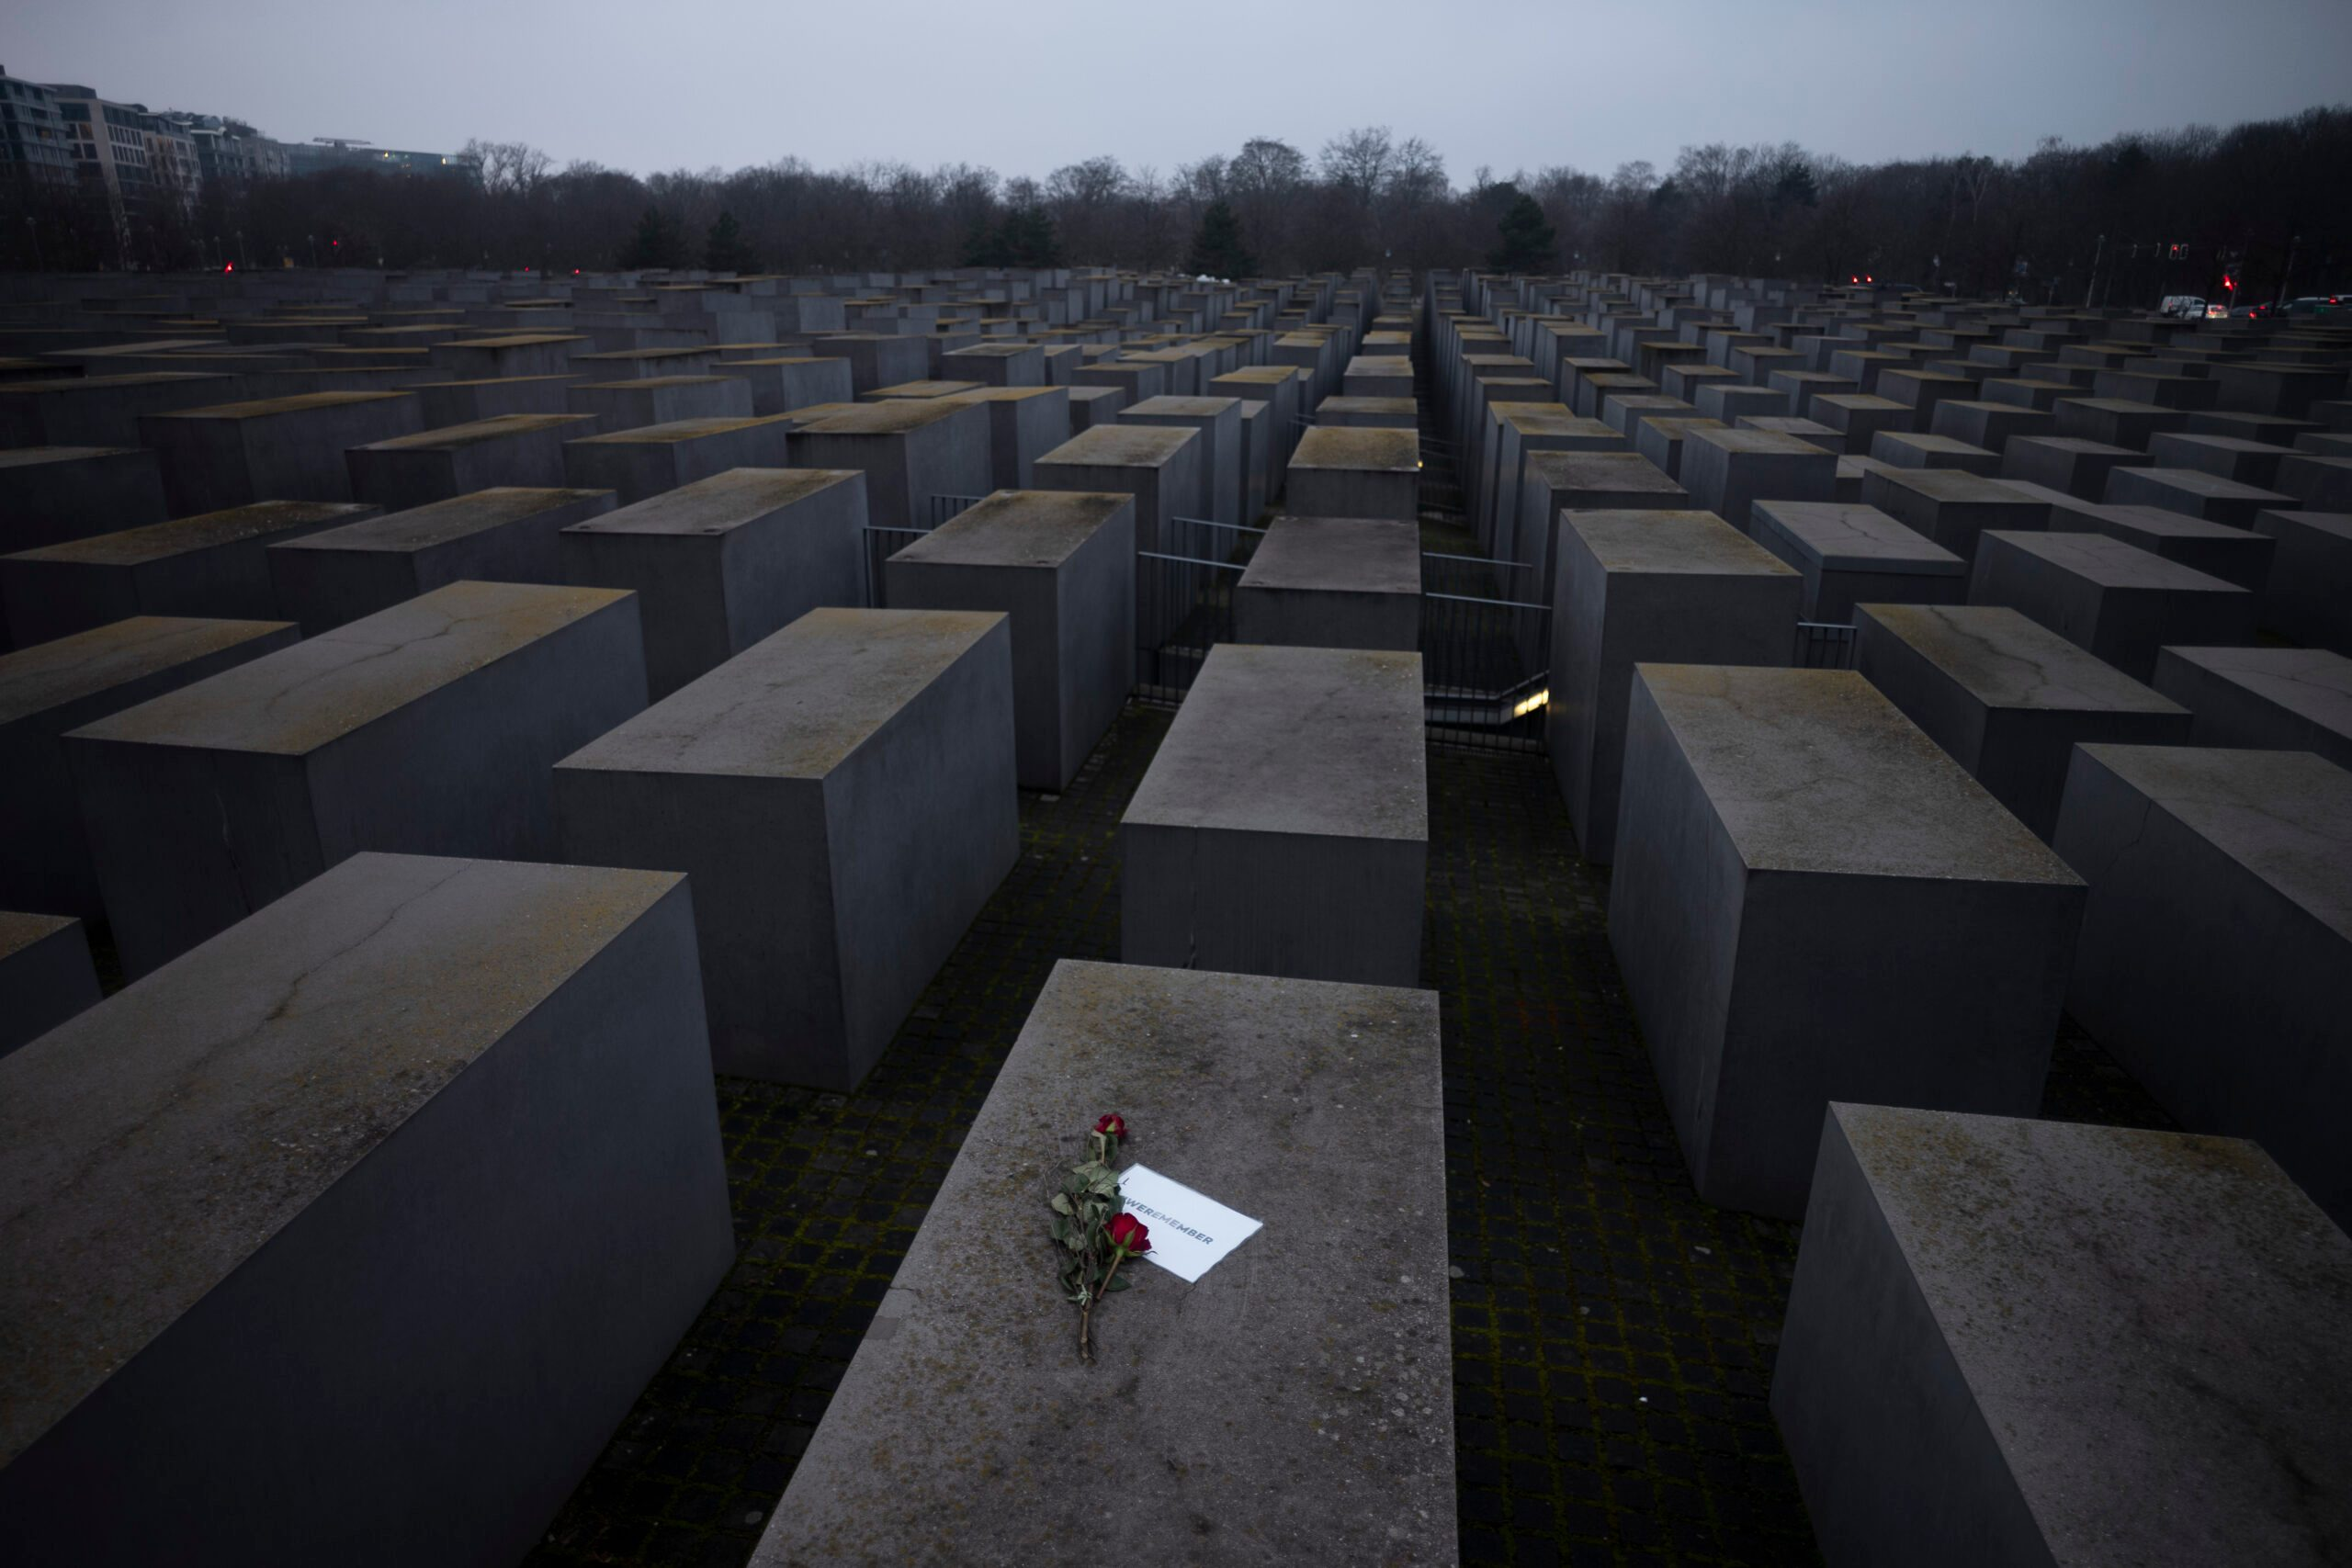 Auschwitz Survivors Mark Anniversary Online Amid Pandemic - snopes